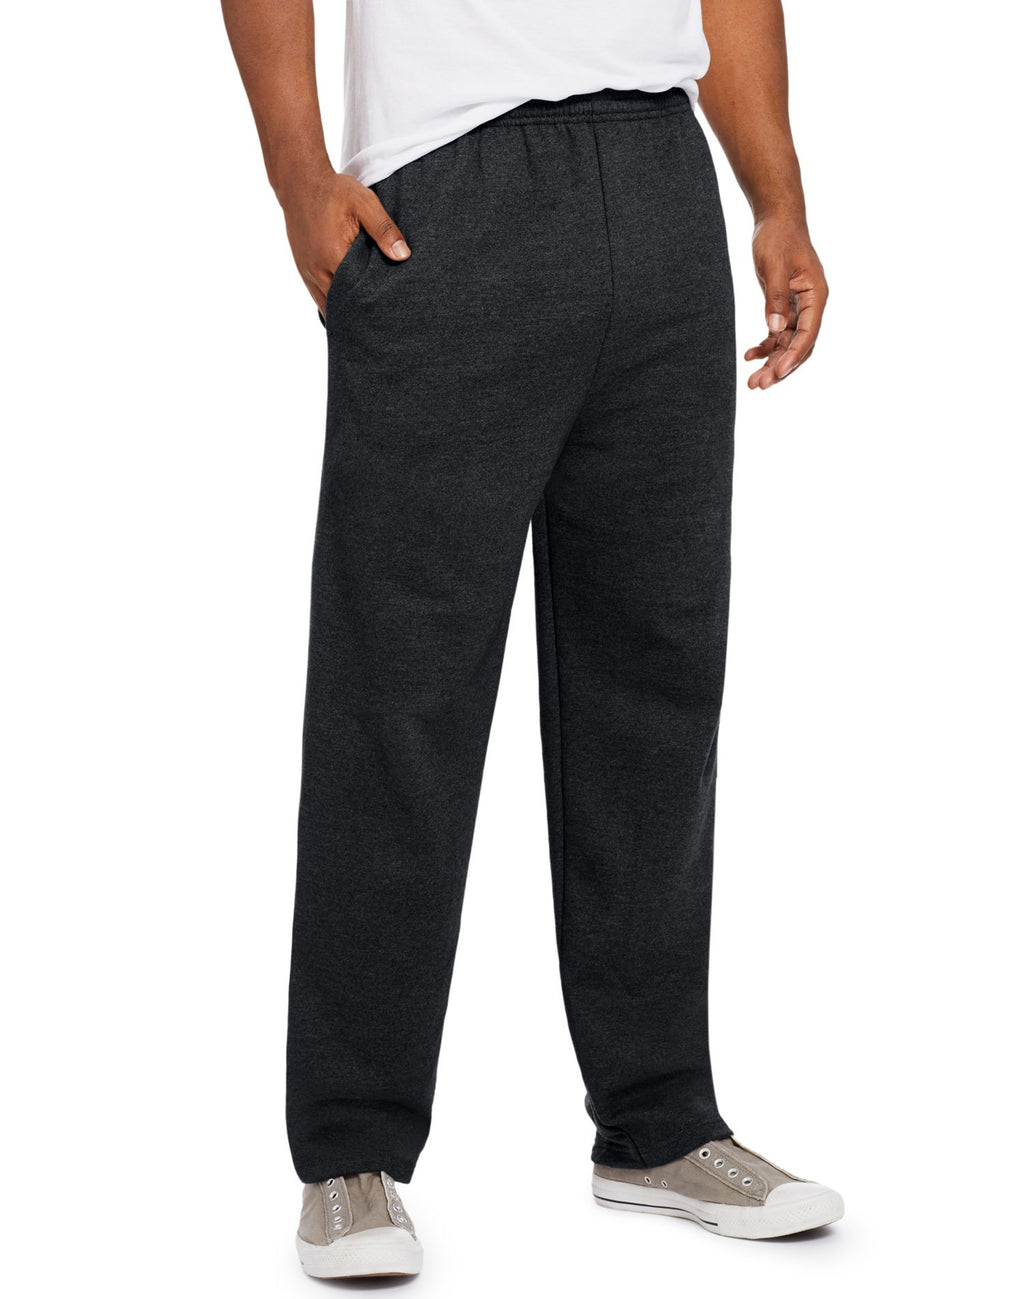 Hanes Mens Comfort Soft Eco Smart Fleece Sweatpants